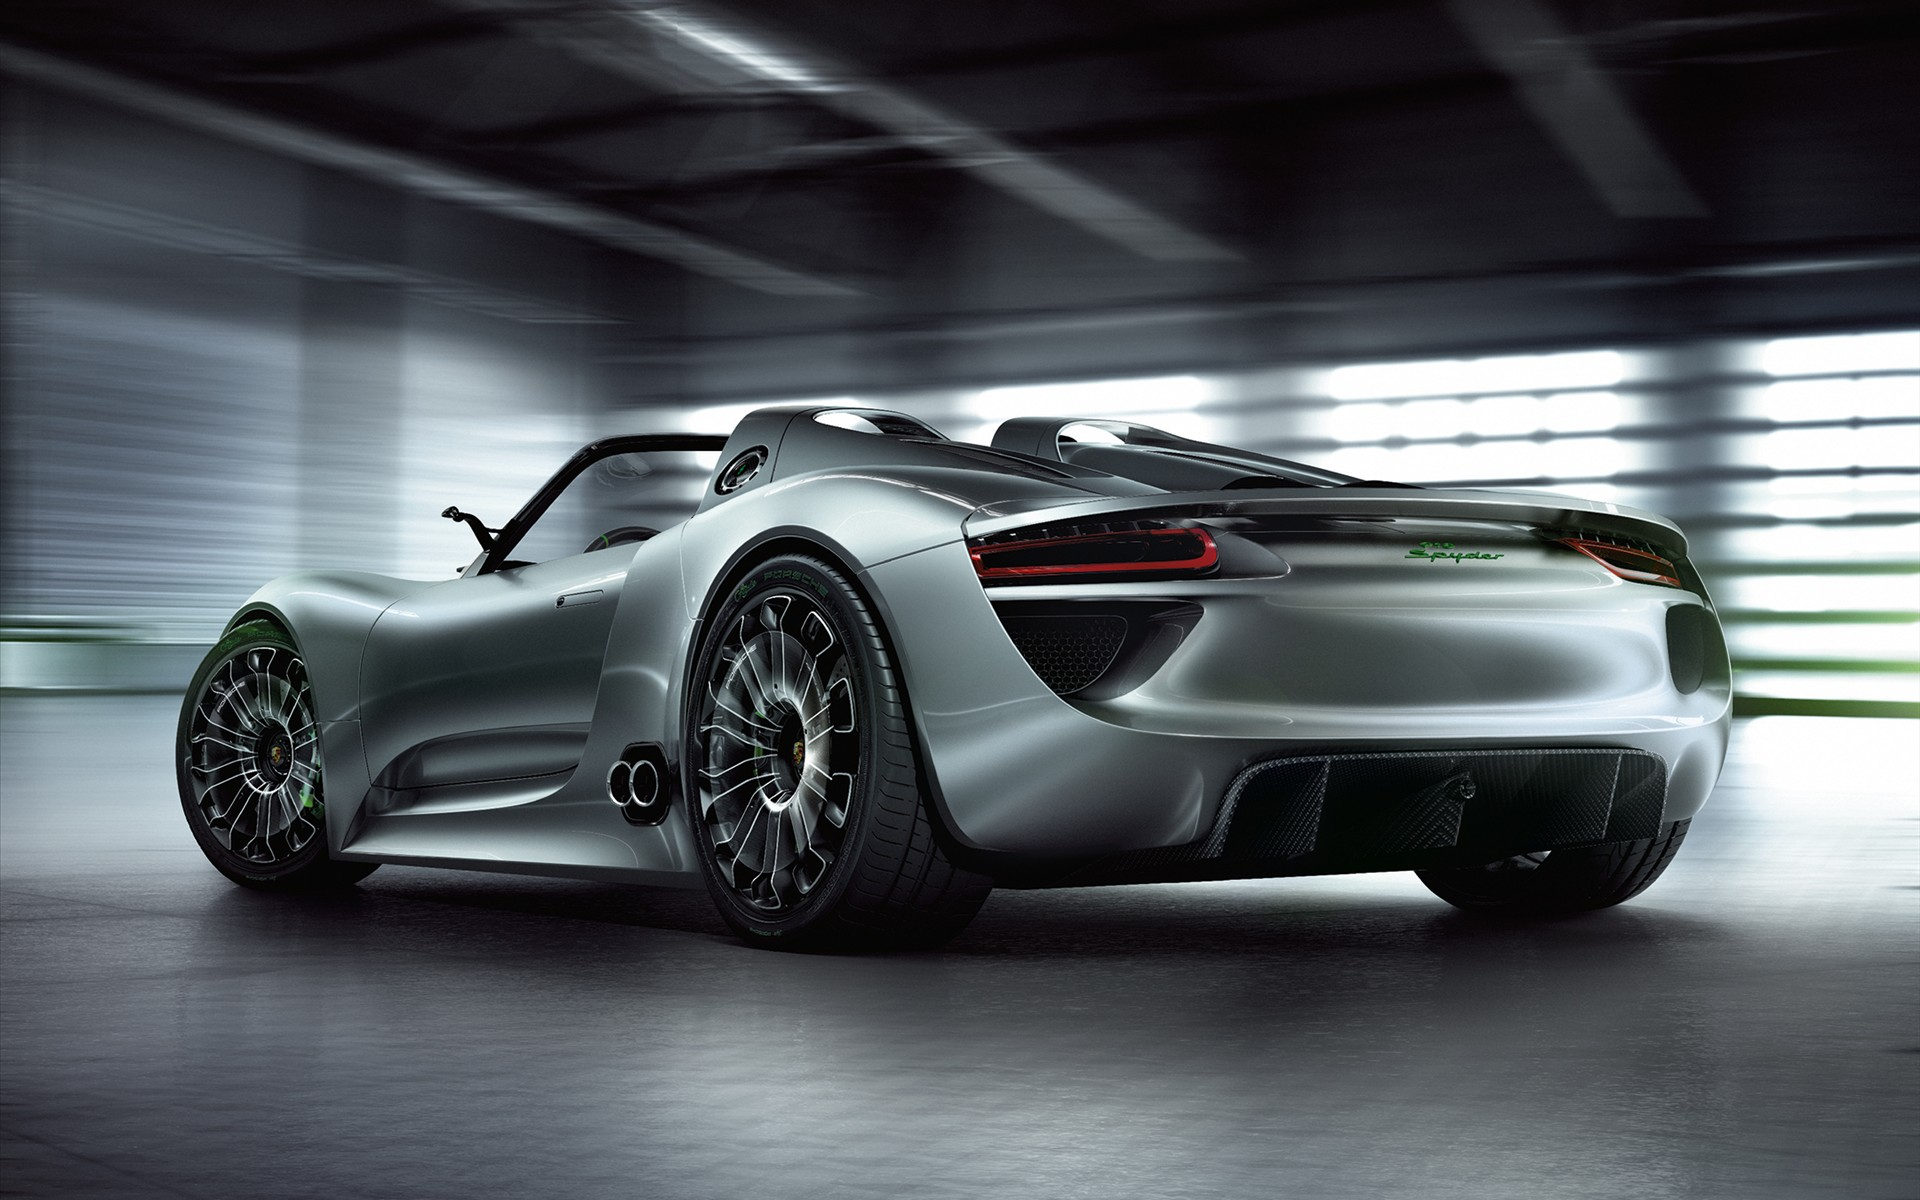 Porsche 918 Spyder 2 Wallpapers Desktop Download